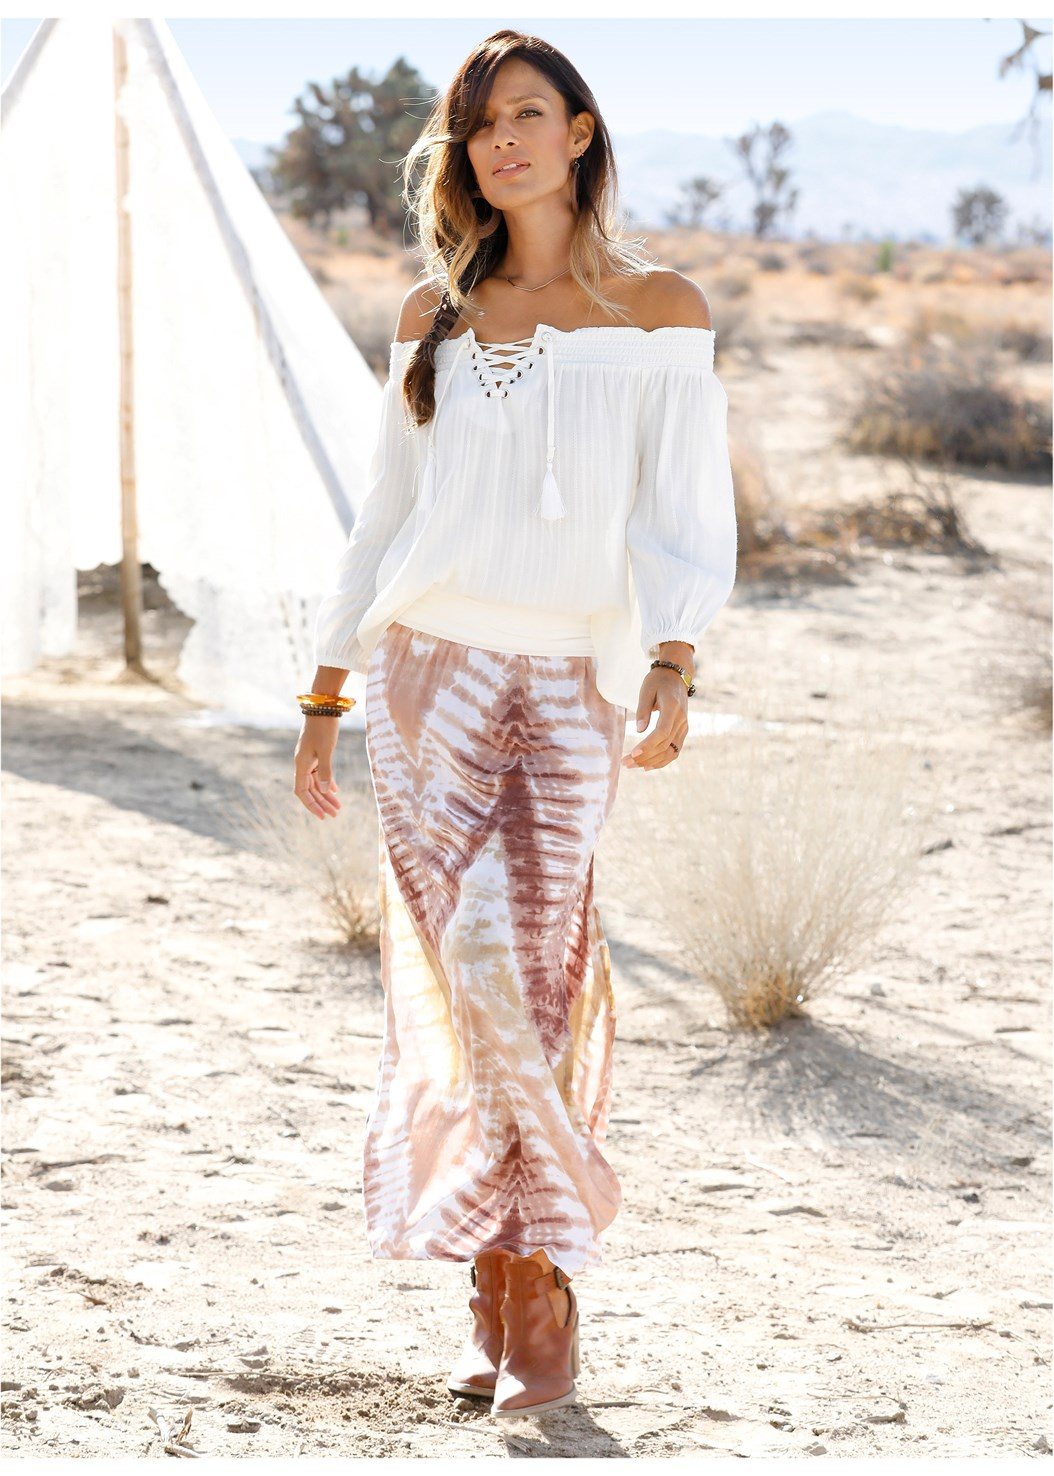 Batik Printed Maxi Skirt,Off The Shoulder Top,Lace Thong 3 For $19,Bead Detail Crochet Bag